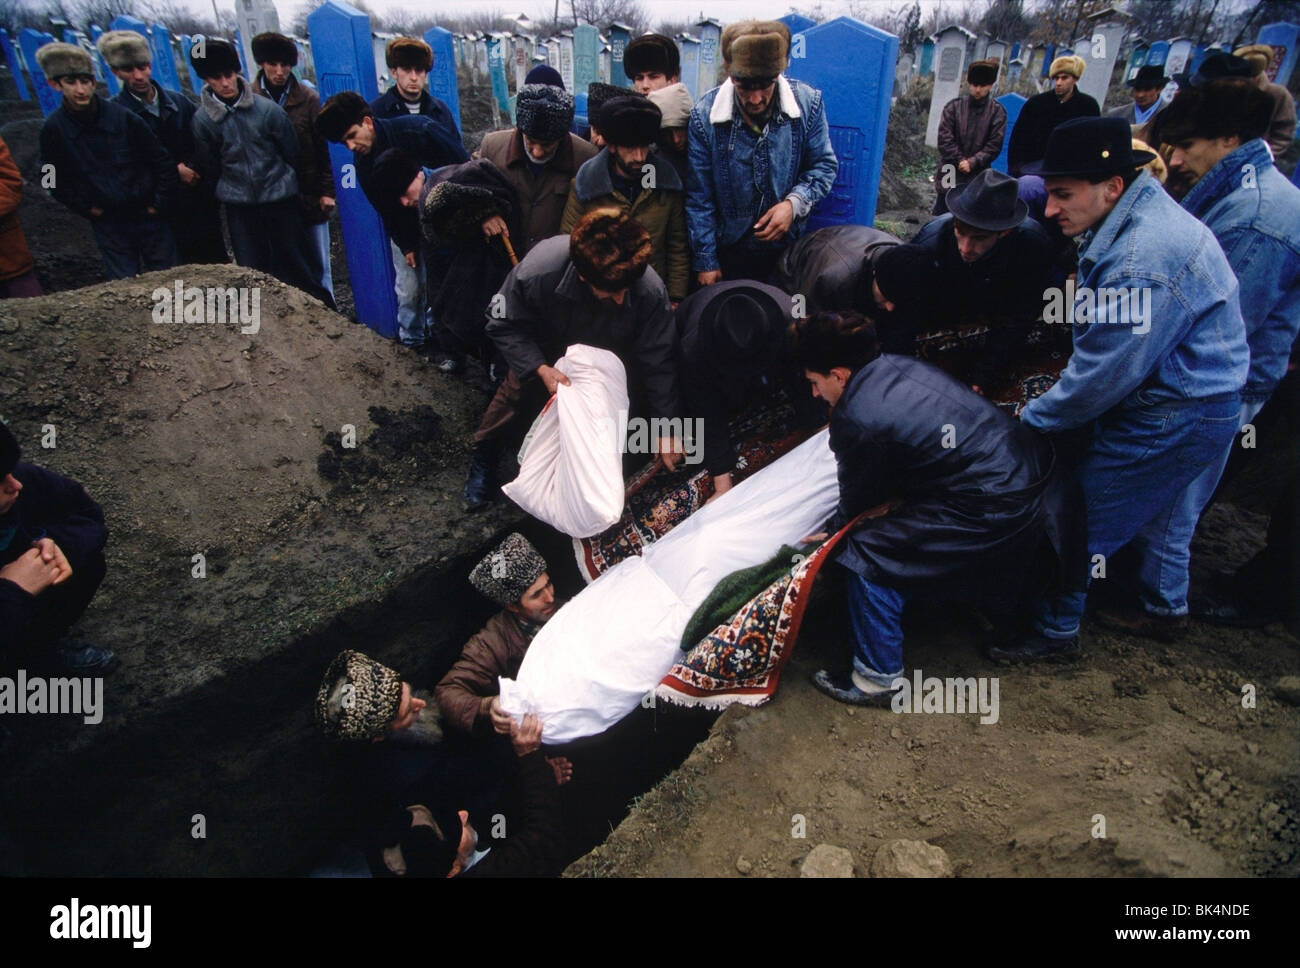 First Chechen War, Traditional Chechen burial in a graveyard West of Grozny in Chechnya. - Stock Image